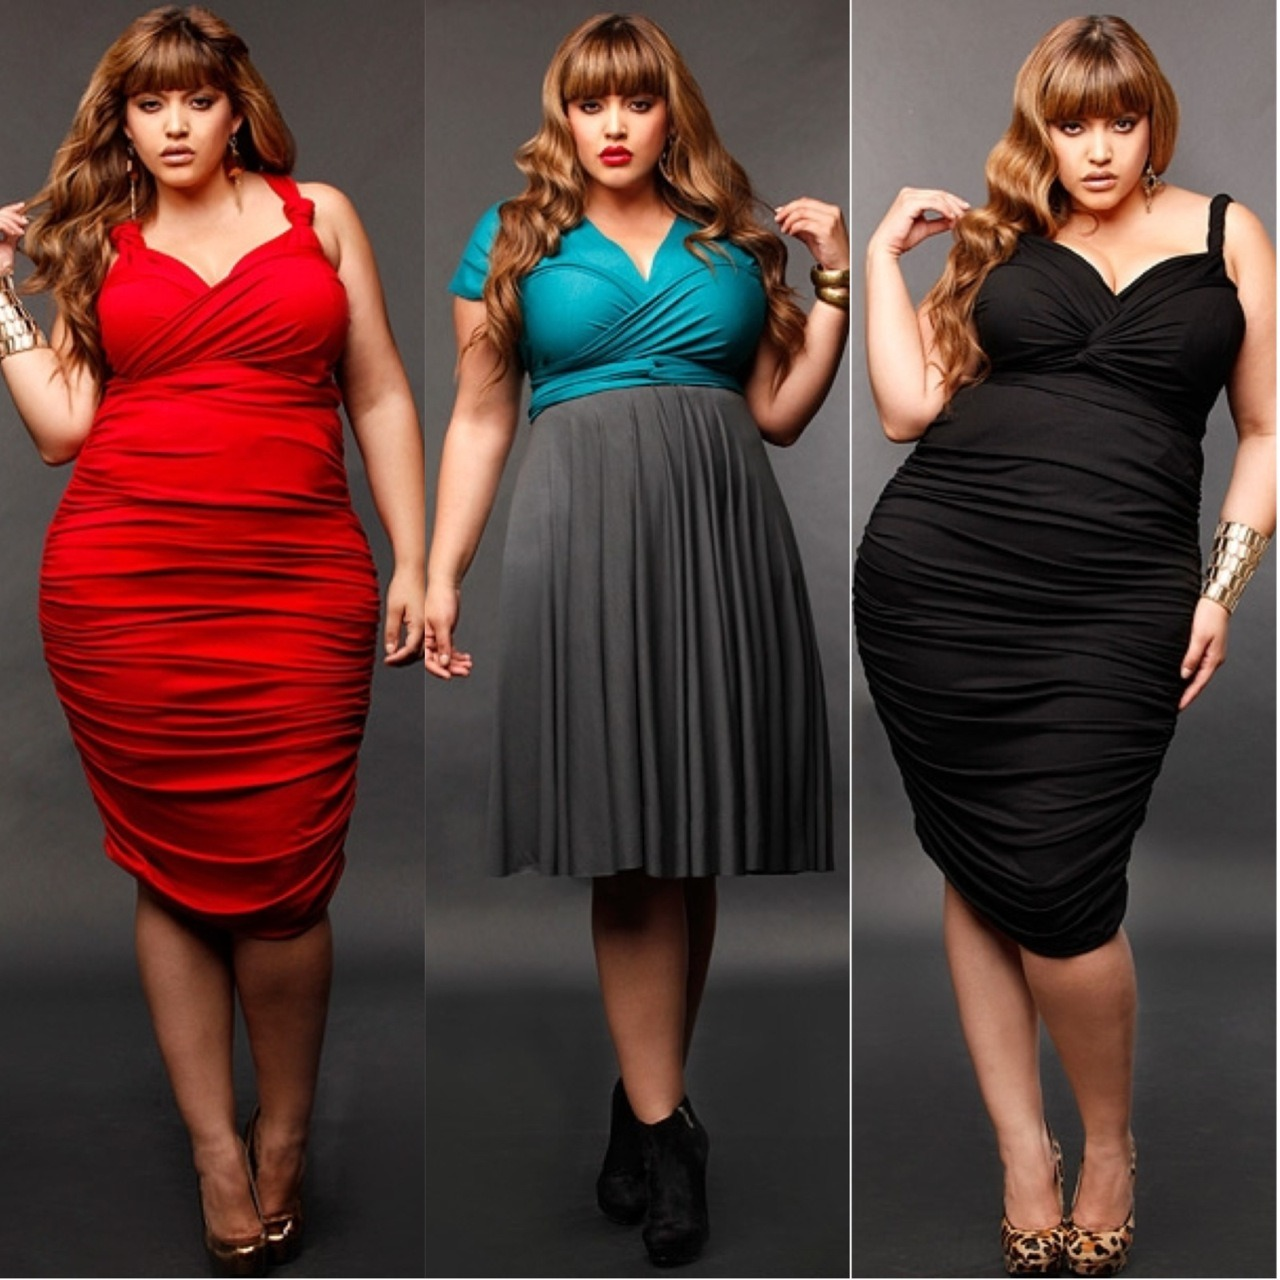 Great styles for dresses!! I just love the intense colors and the silhouettes!!! I had to share!!!!